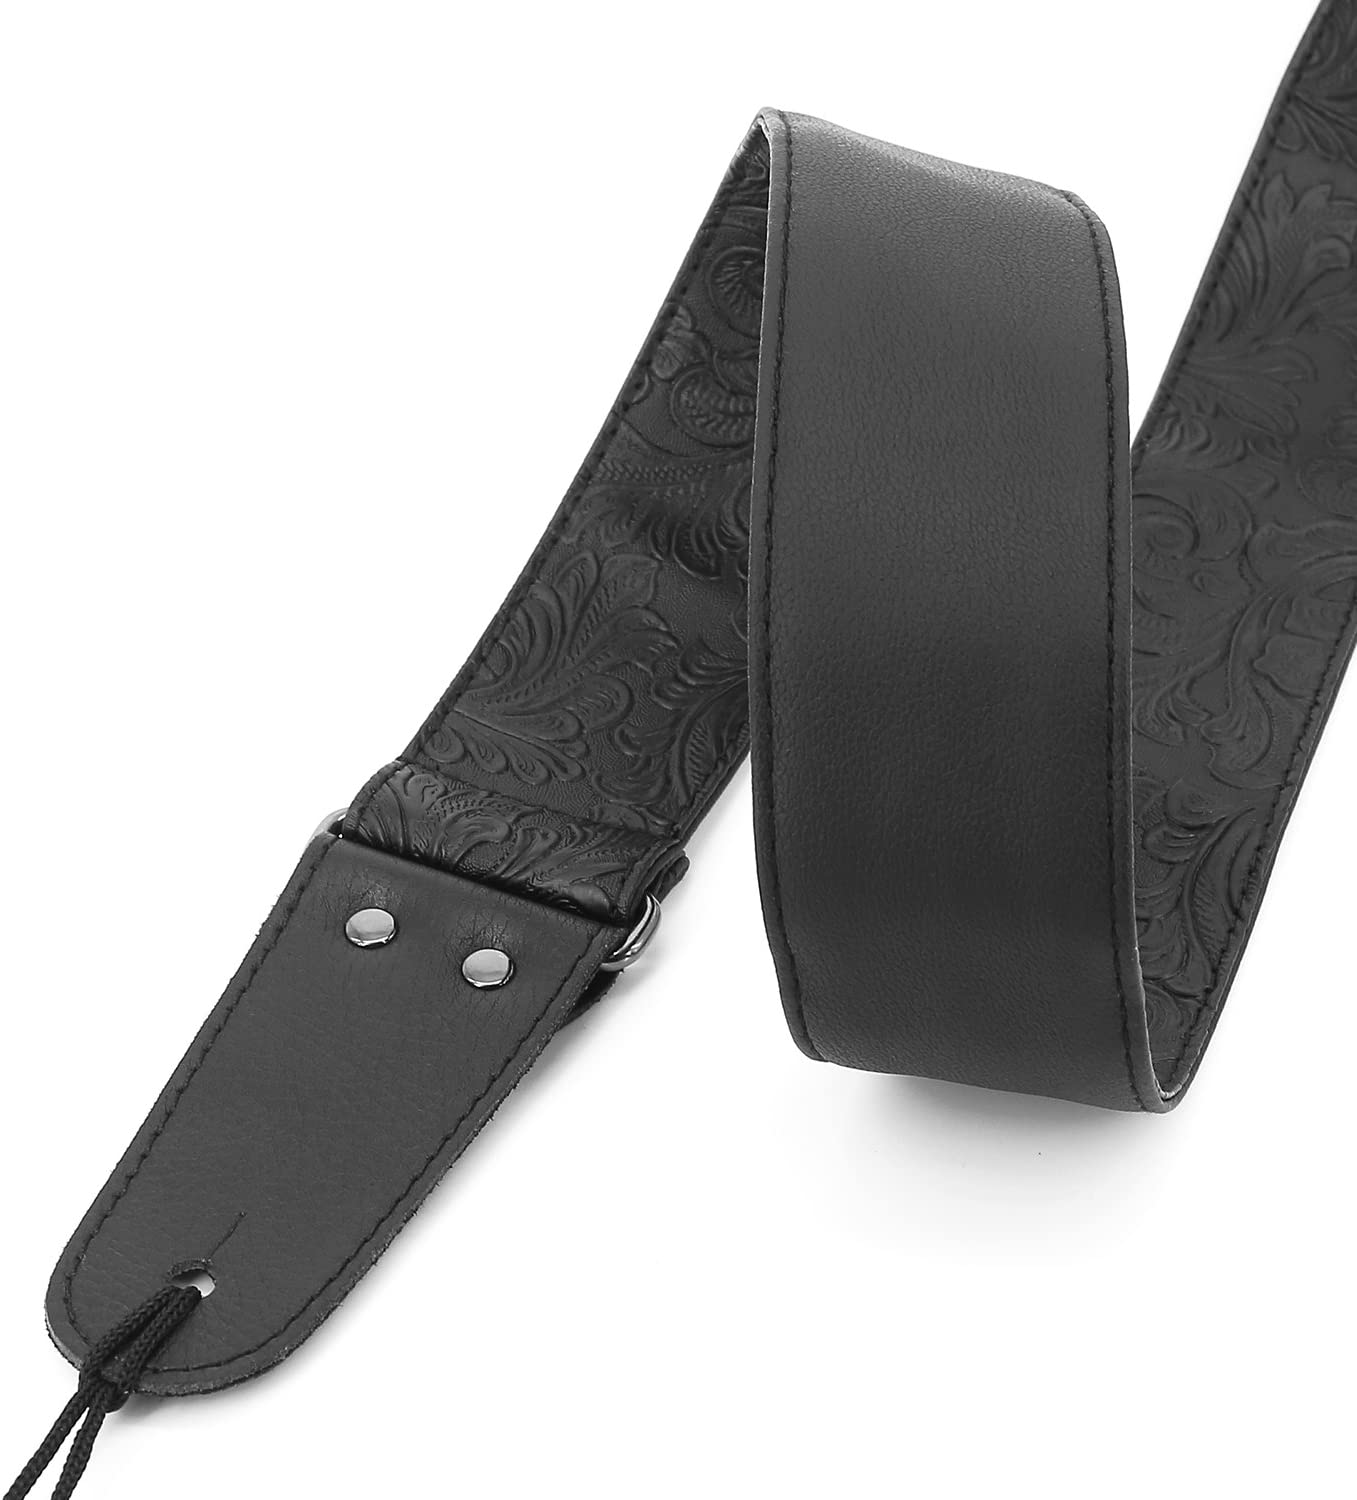 Printed Leather Guitar Strap PU Leather Western Vintage 60s Retro Guitar Strap with Genuine Leather Ends for Electric Bass Guitar,Wide Adjustment Range with Tie,Include 2 Picks,Black Guitar Strap